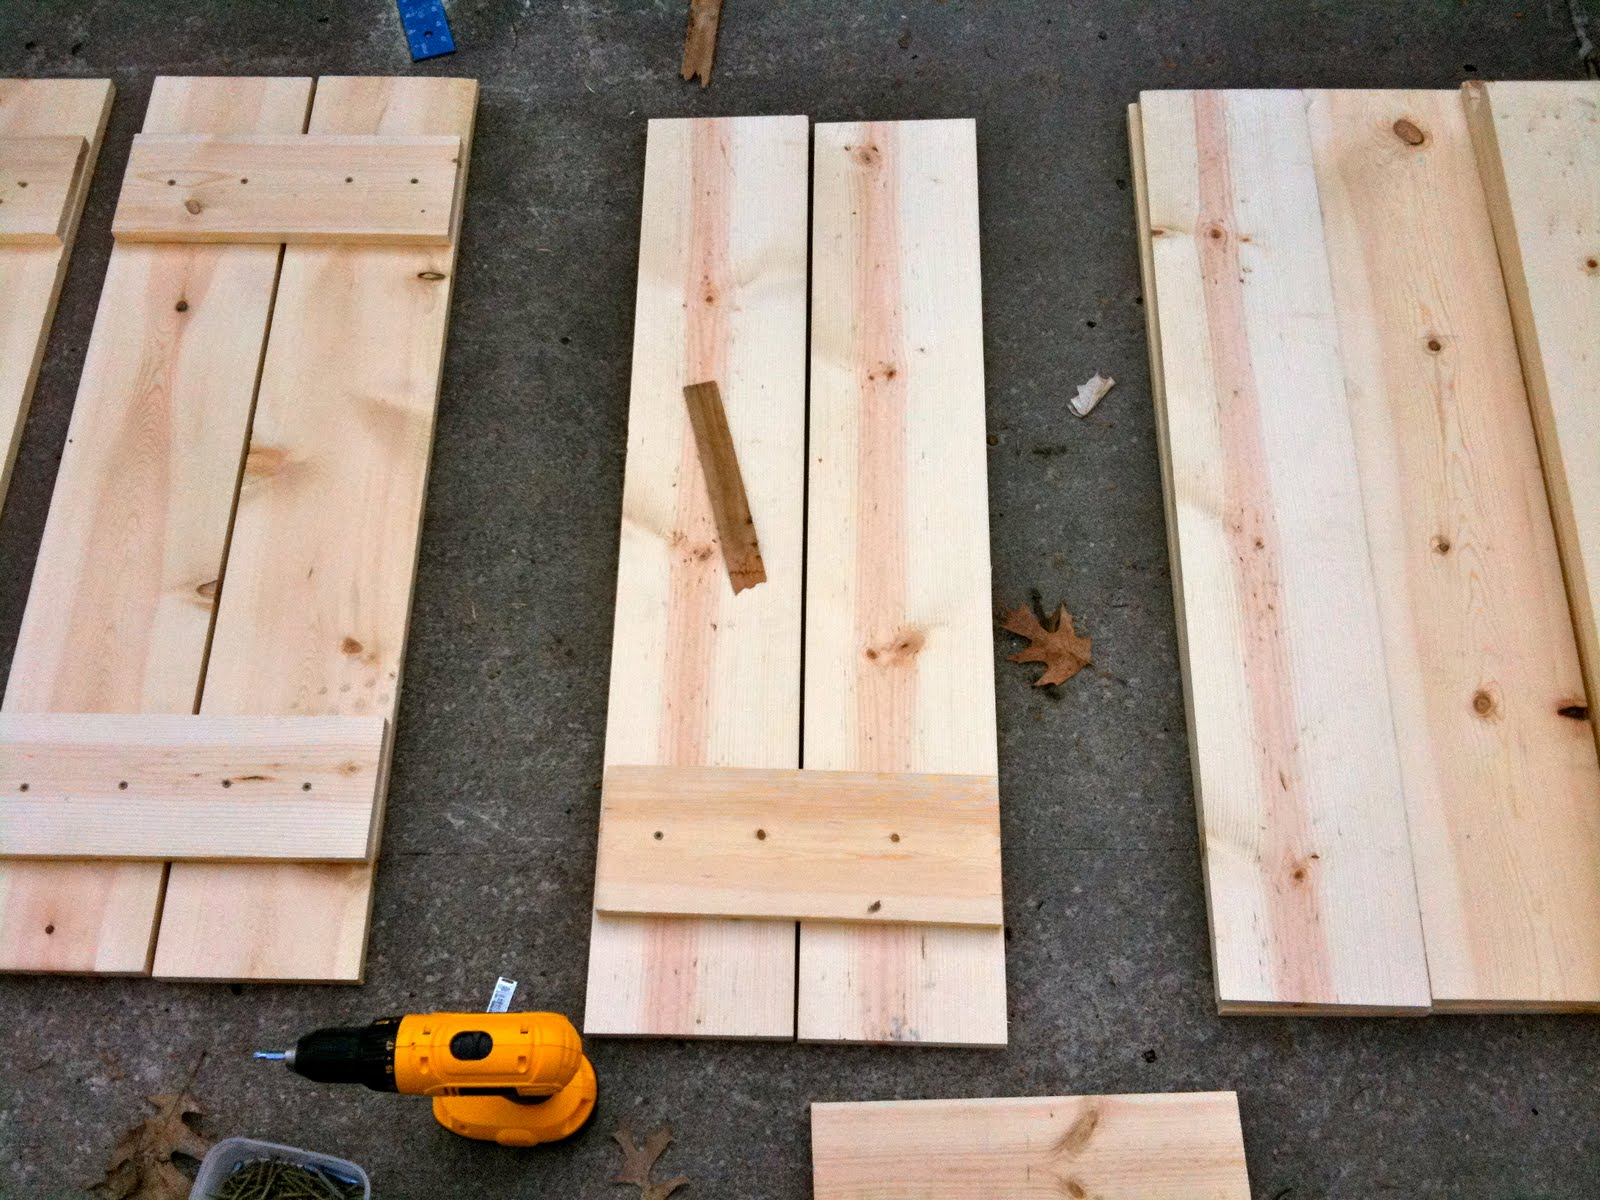 Diy Exterior Window Shutters Best Wood To Make Outdoor Shutters How To Build Shutters Diy